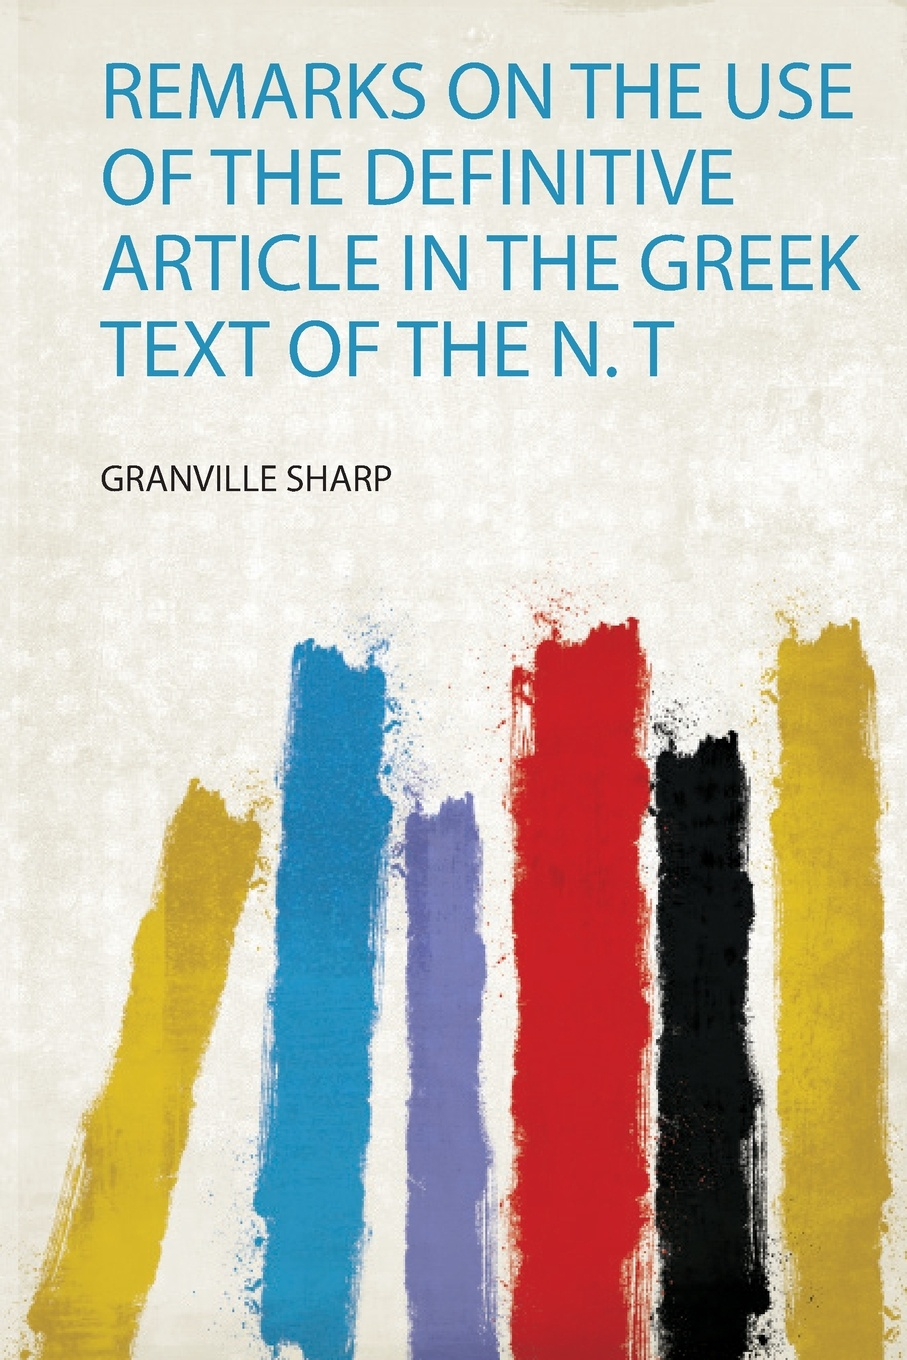 Remarks on the Use of the Definitive Article in the Greek Text of the N. T christopher wordsworth six letters to granville sharp esq respecting his remarks on the uses of the definitive article in the greek text of the new testament